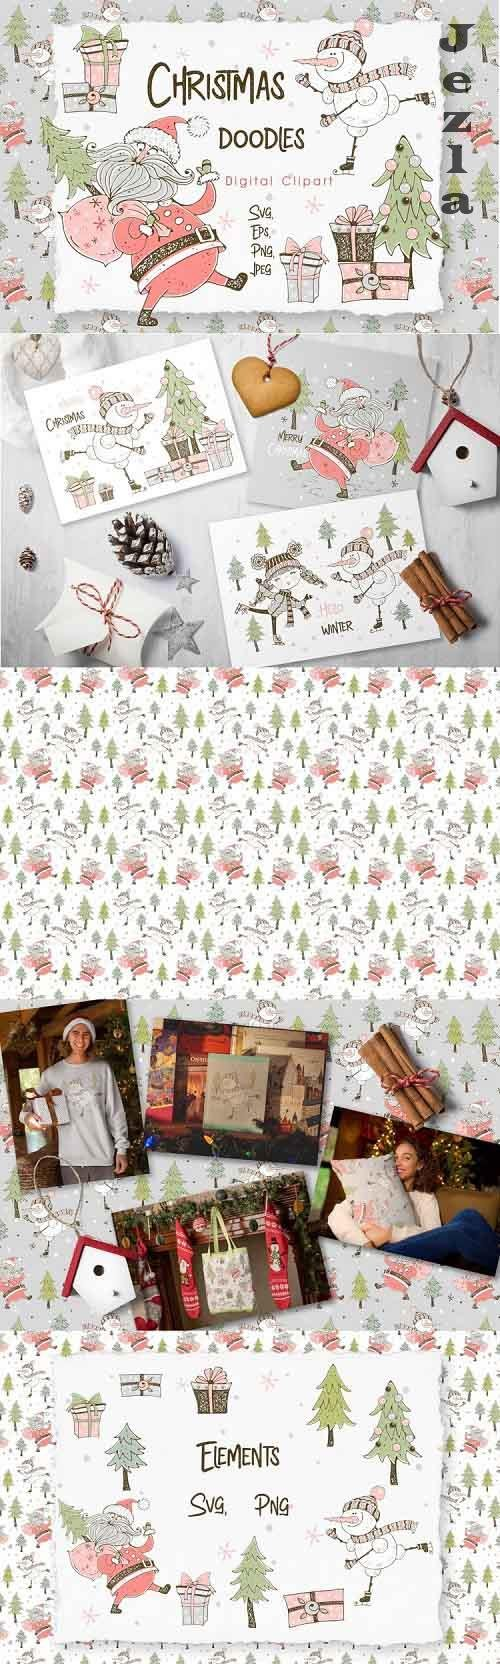 Santa Claus and the merry snowman, Christmas digital clipart - 955130